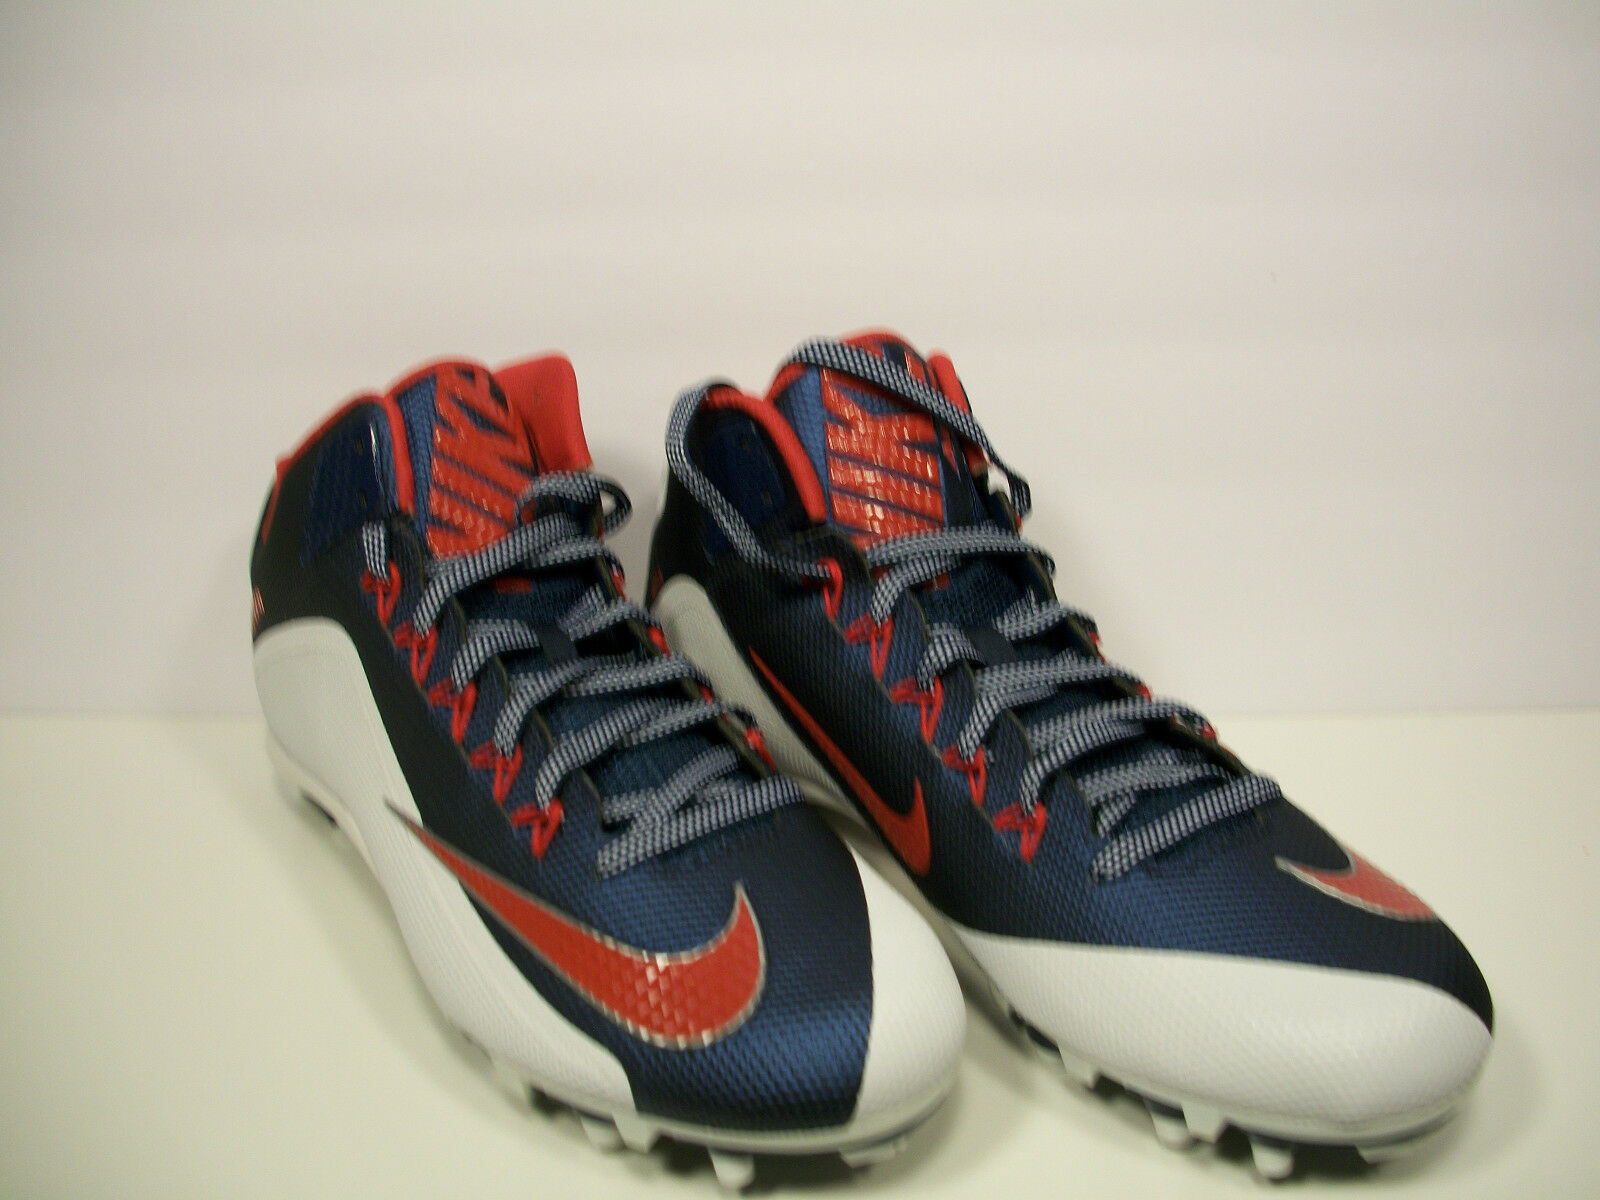 0c6fce0155 NIKE Mens Alpha Pro 2 3 4 TD Football Cleats Red bluee White 729444-413